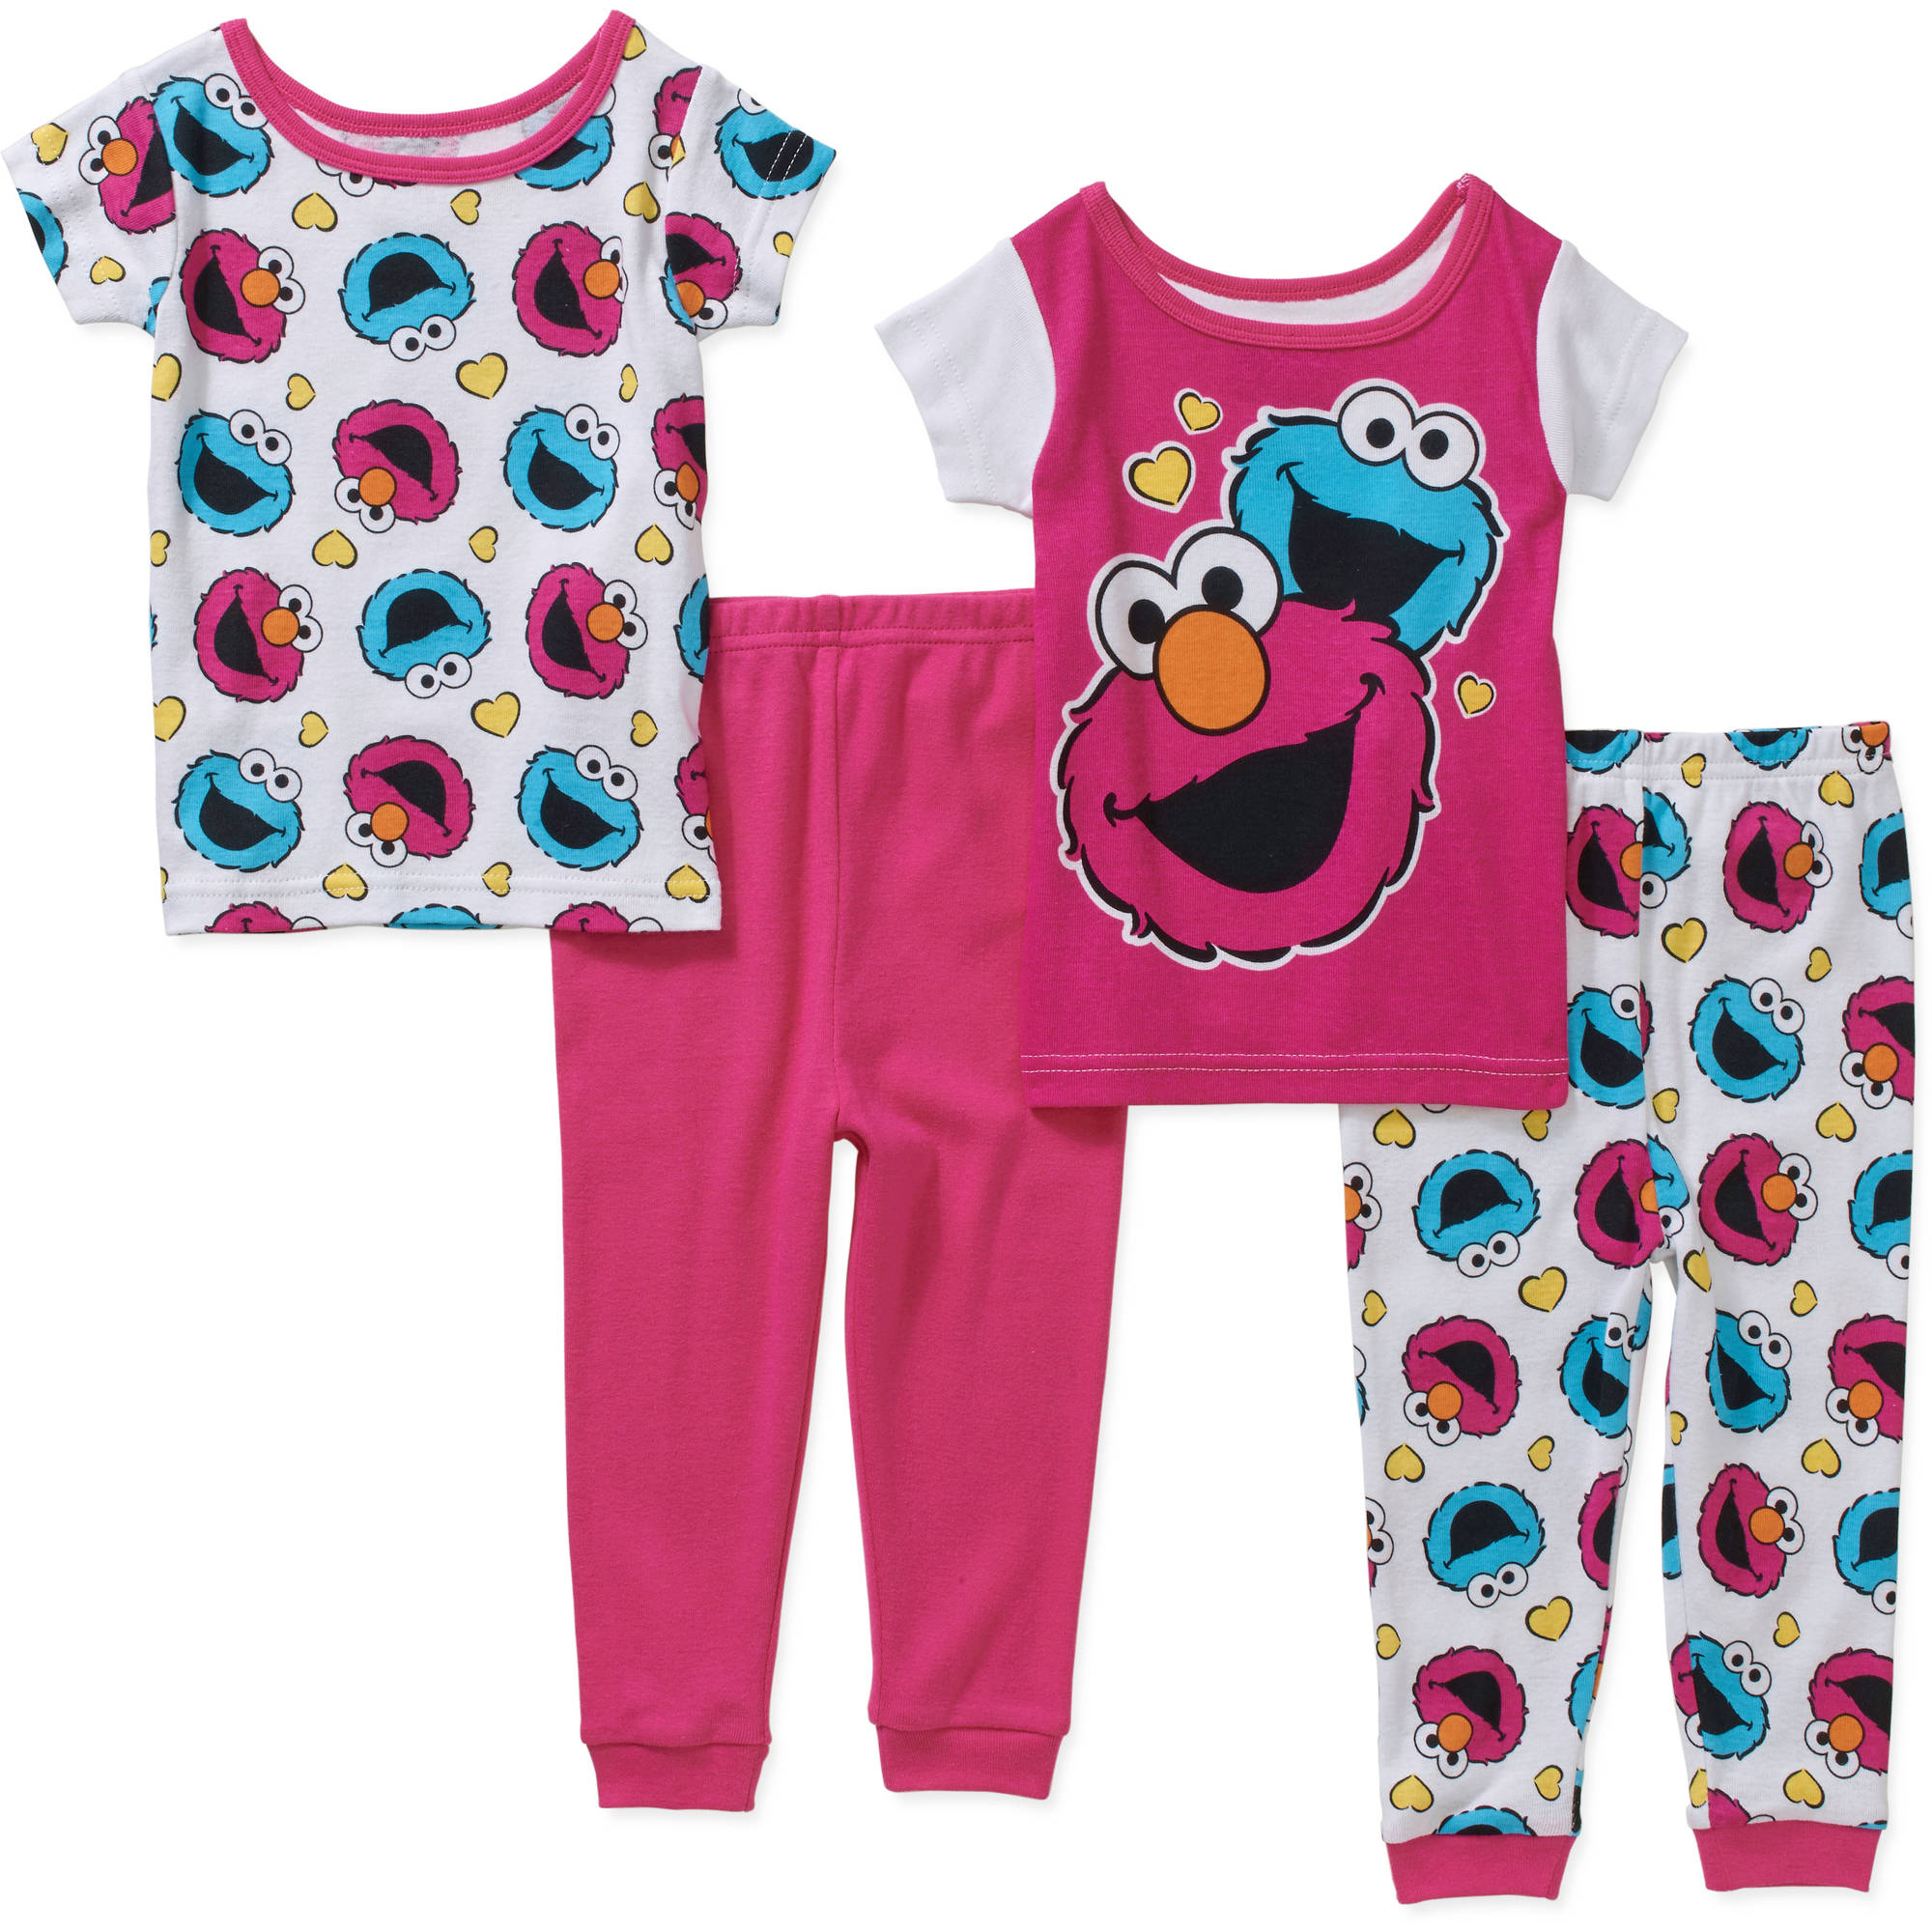 Sesame Street Infant Baby Girl Cotton Tight Fit Short Sleeve PJs, 4-Pieces